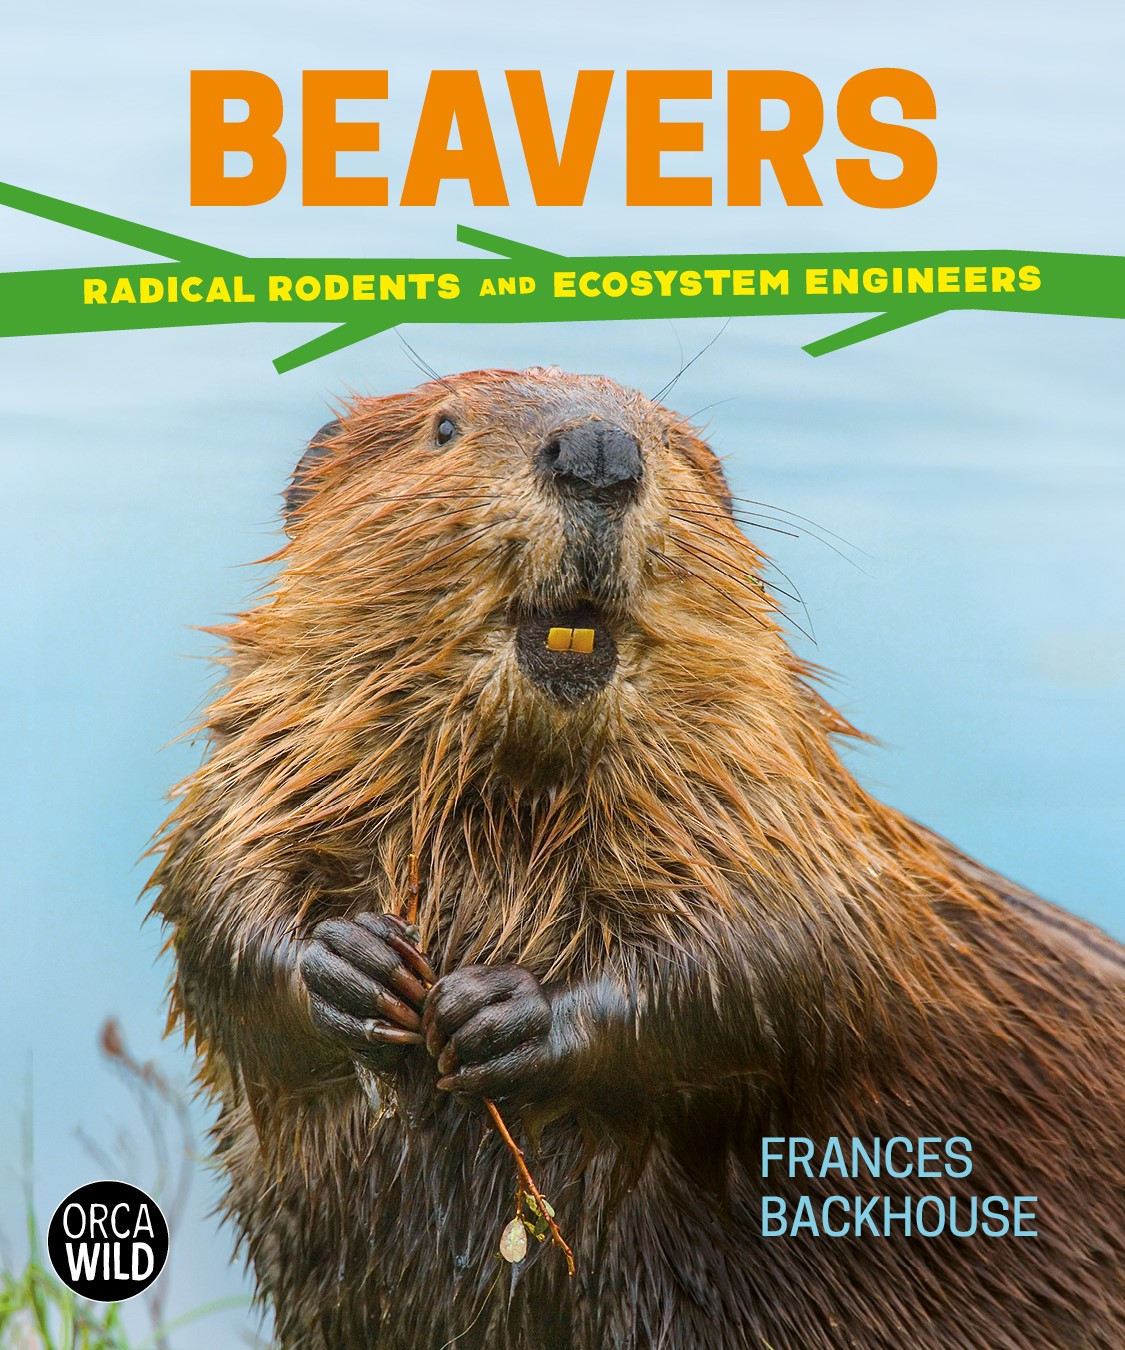 Beavers: Radical Rodents and Ecosystem Engineers